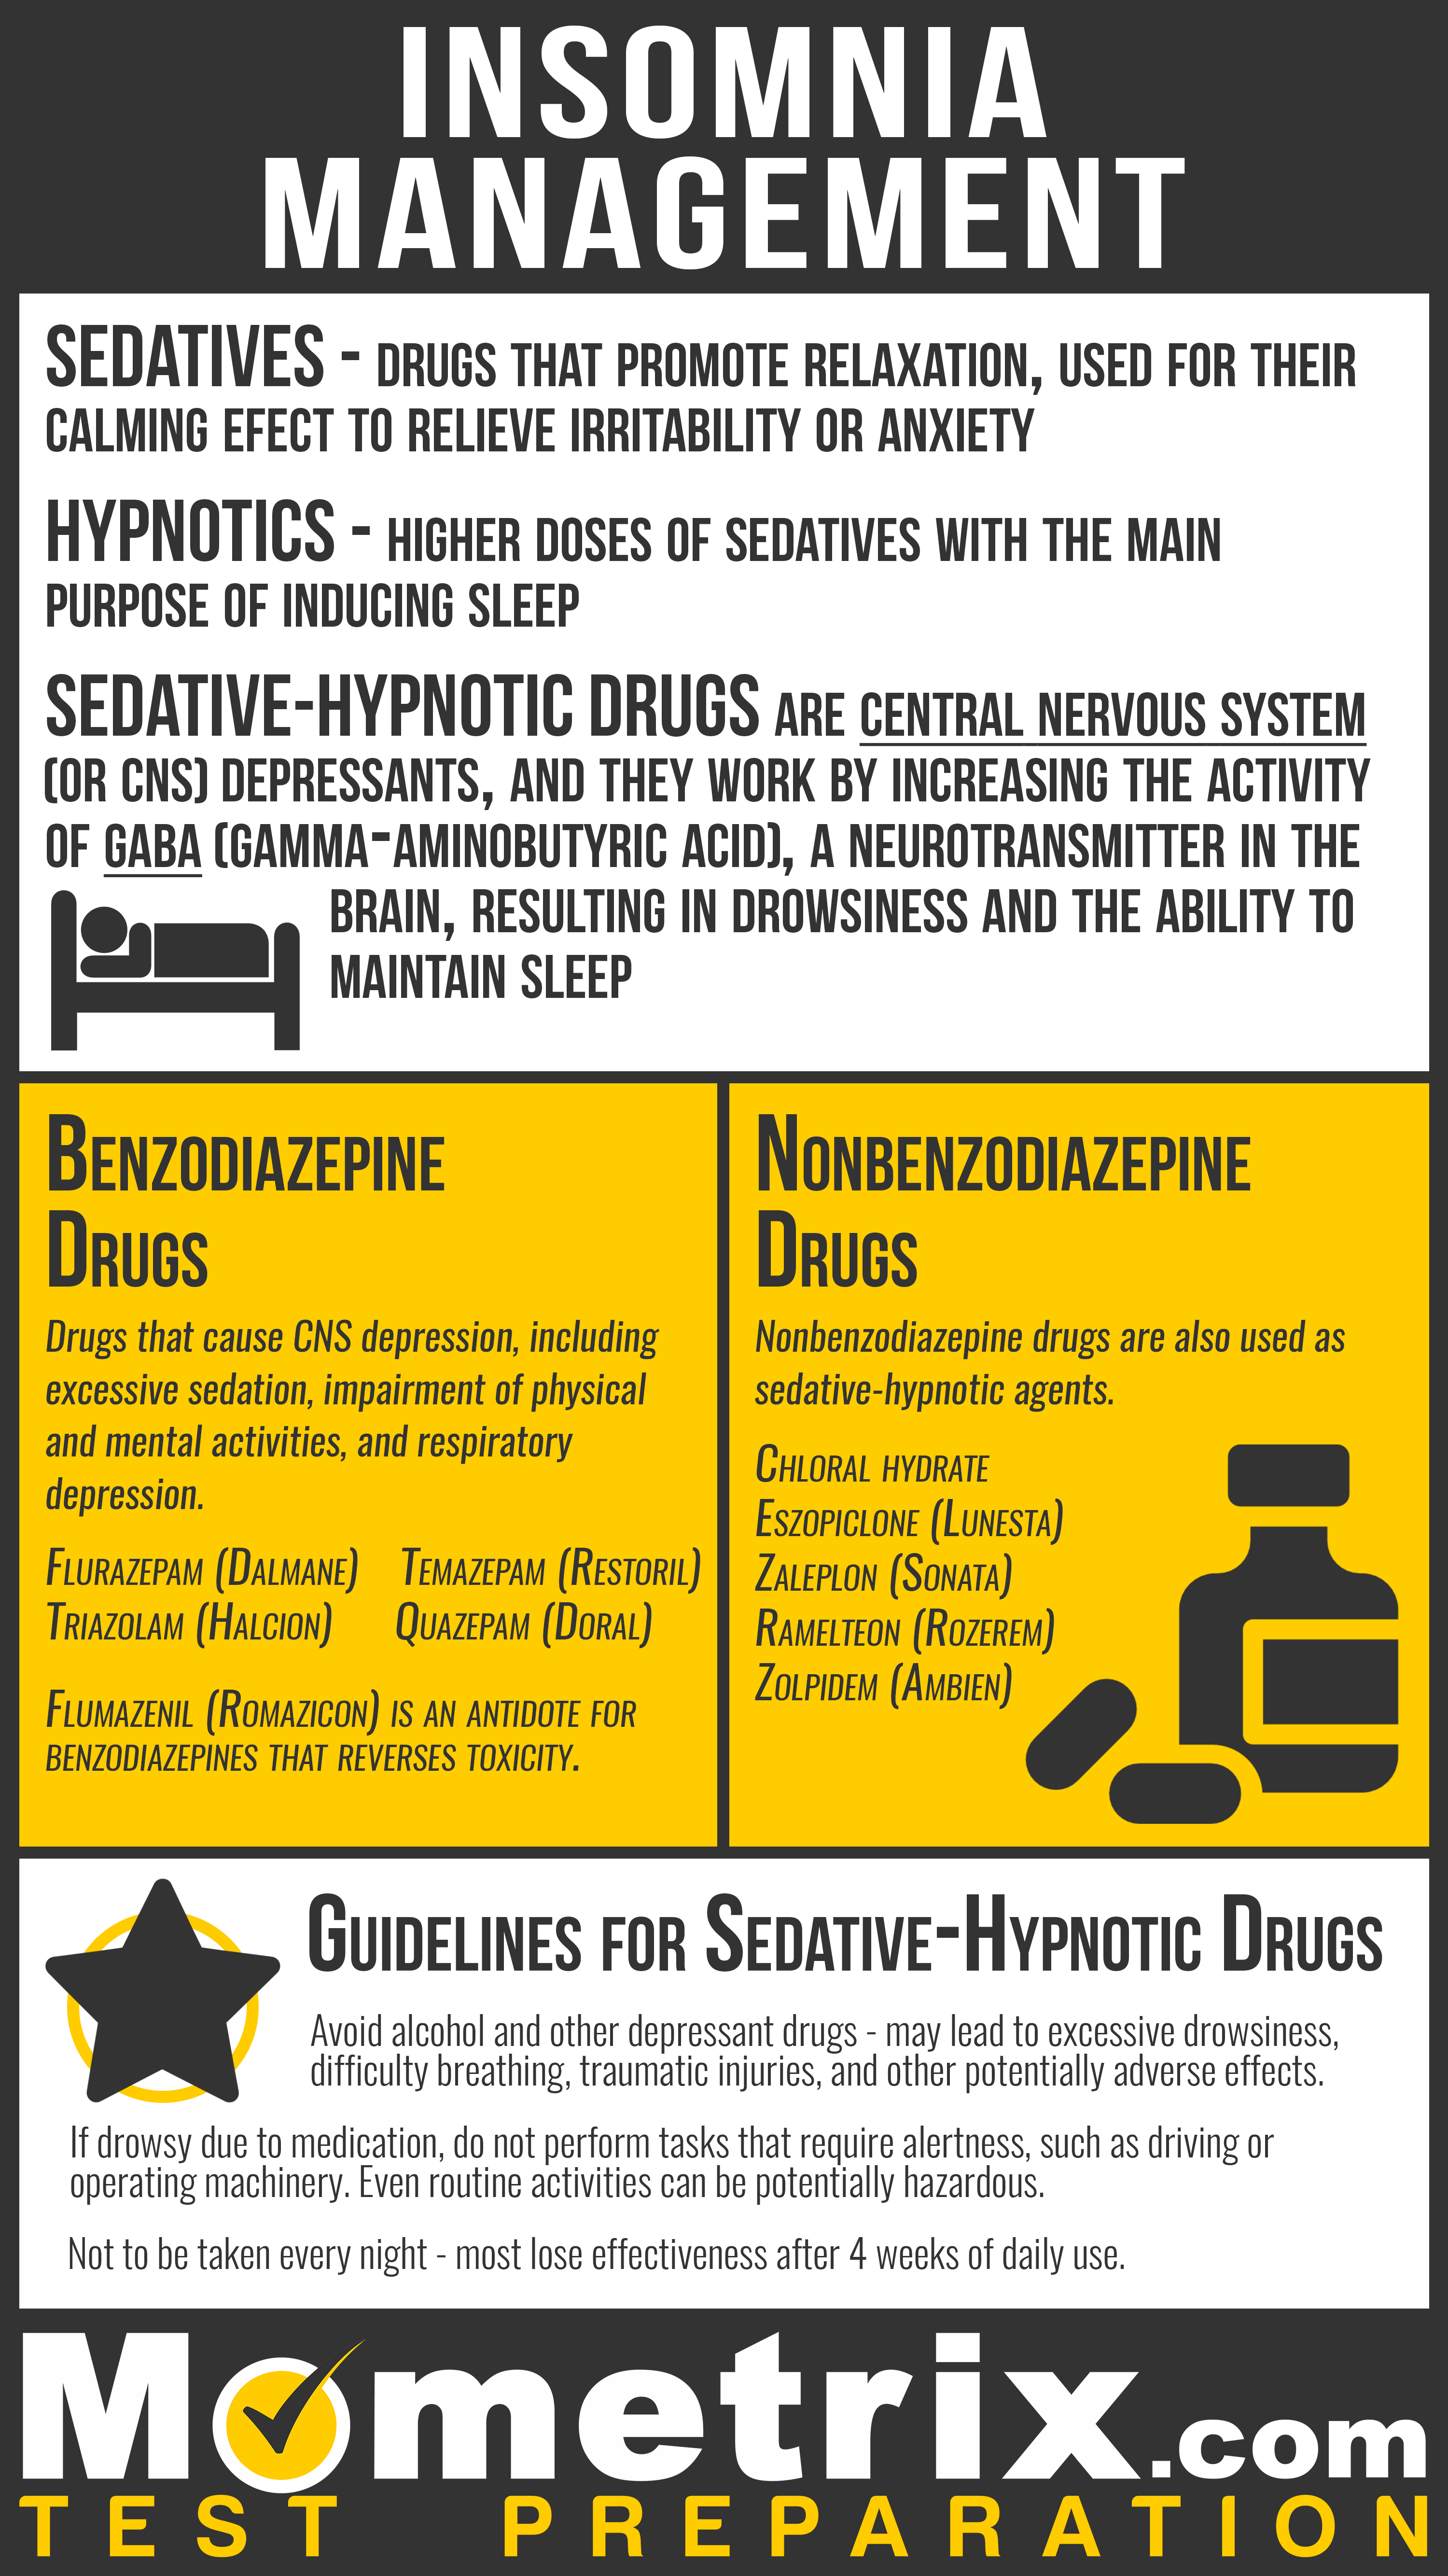 What you need to know about Sedatives, Hypnotics, and Insomnia